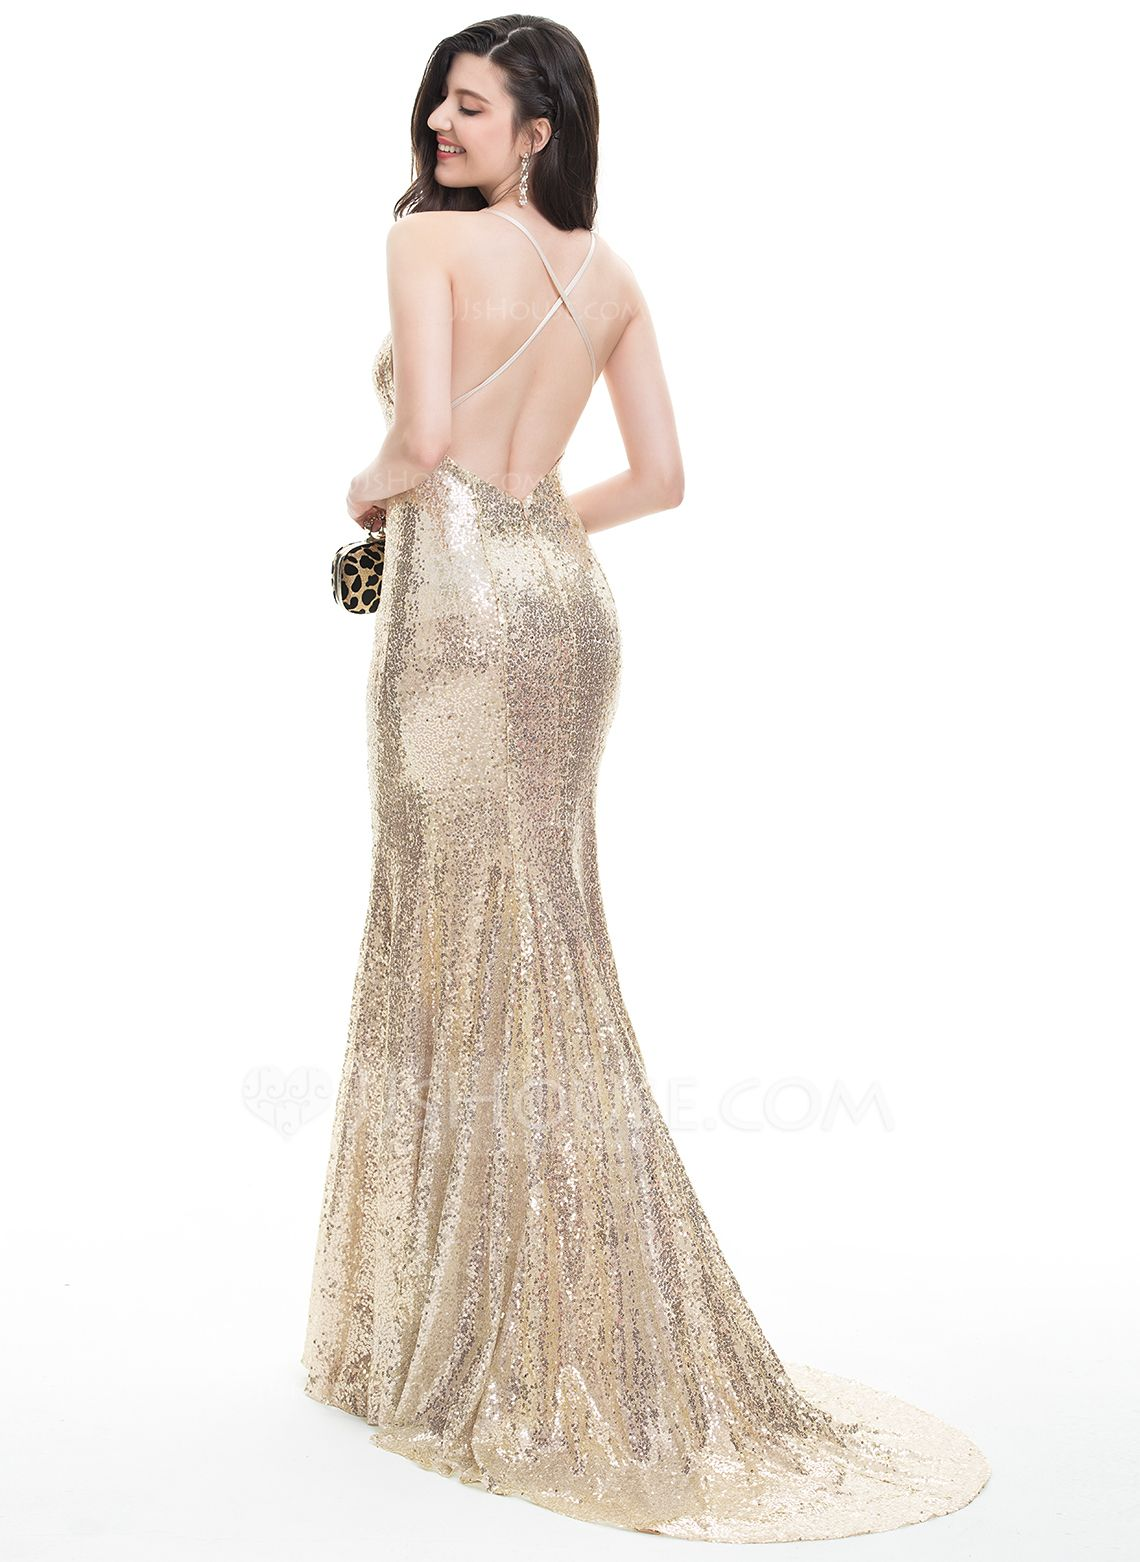 Fashion dress for wedding party  TrumpetMermaid Vneck Sweep Train Sequined Prom Dresses With